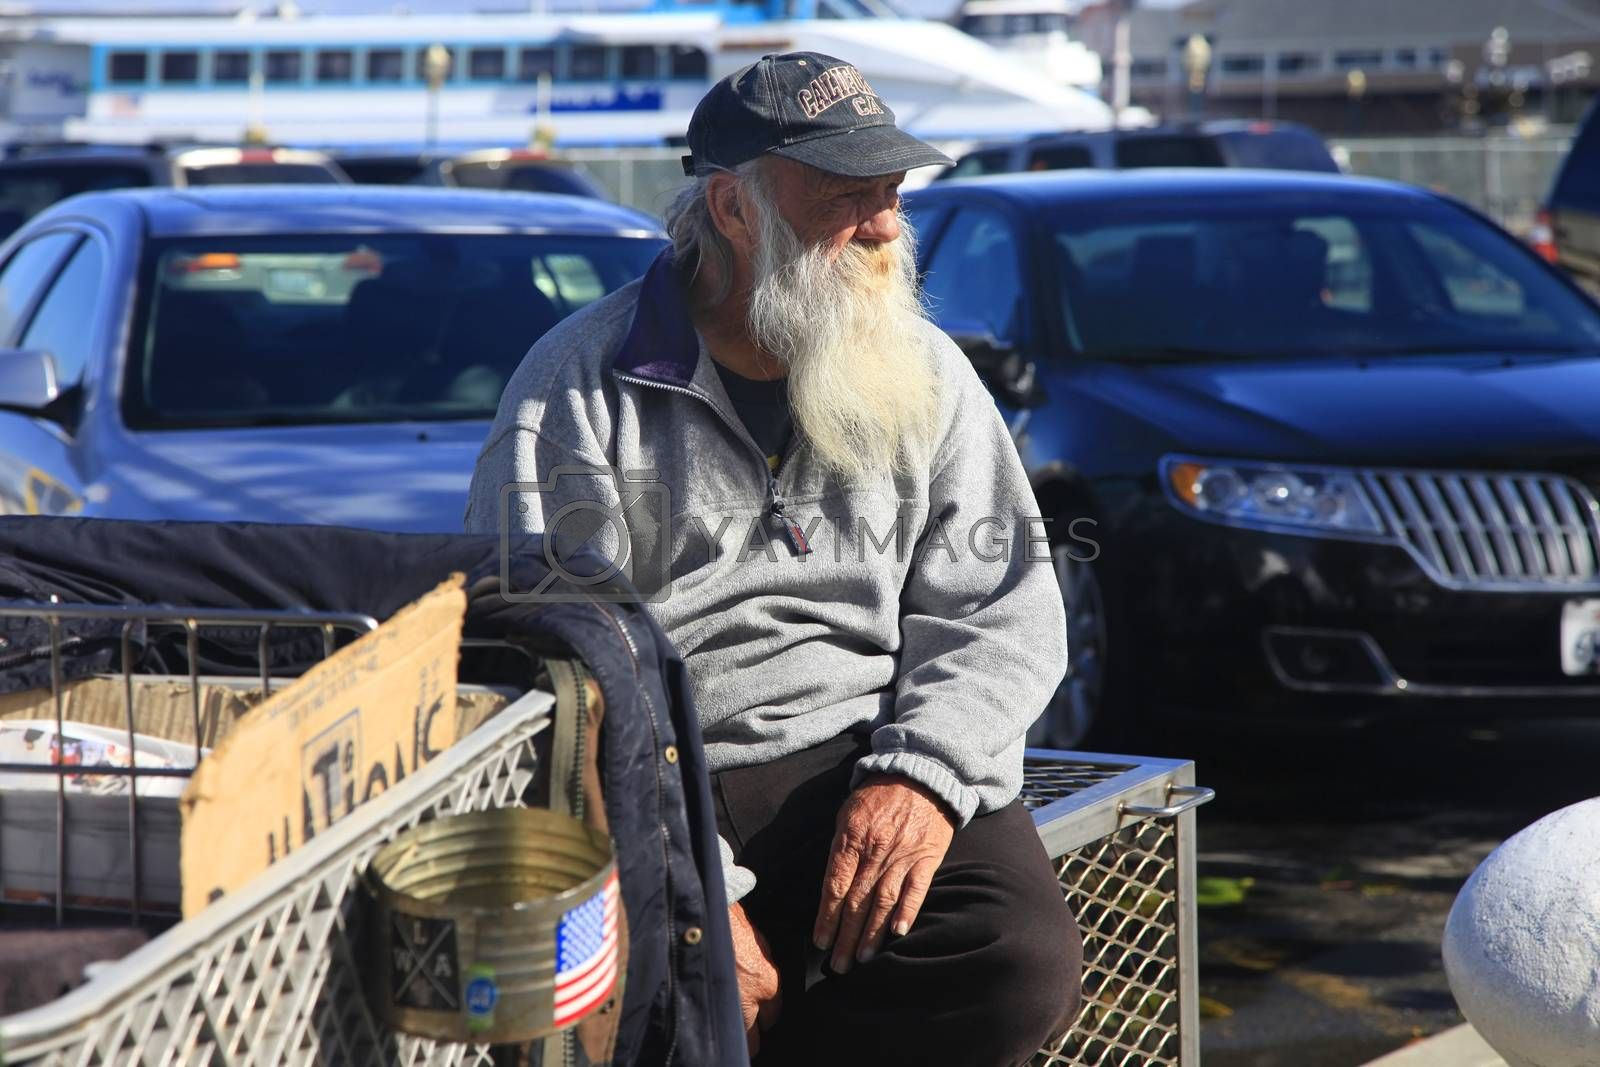 San Francisco, CA, USA - October 22, 2012: Homeless Man with Shopping Cart on the streets in San Francisco. He carries all of his belongings with him in a shopping cart